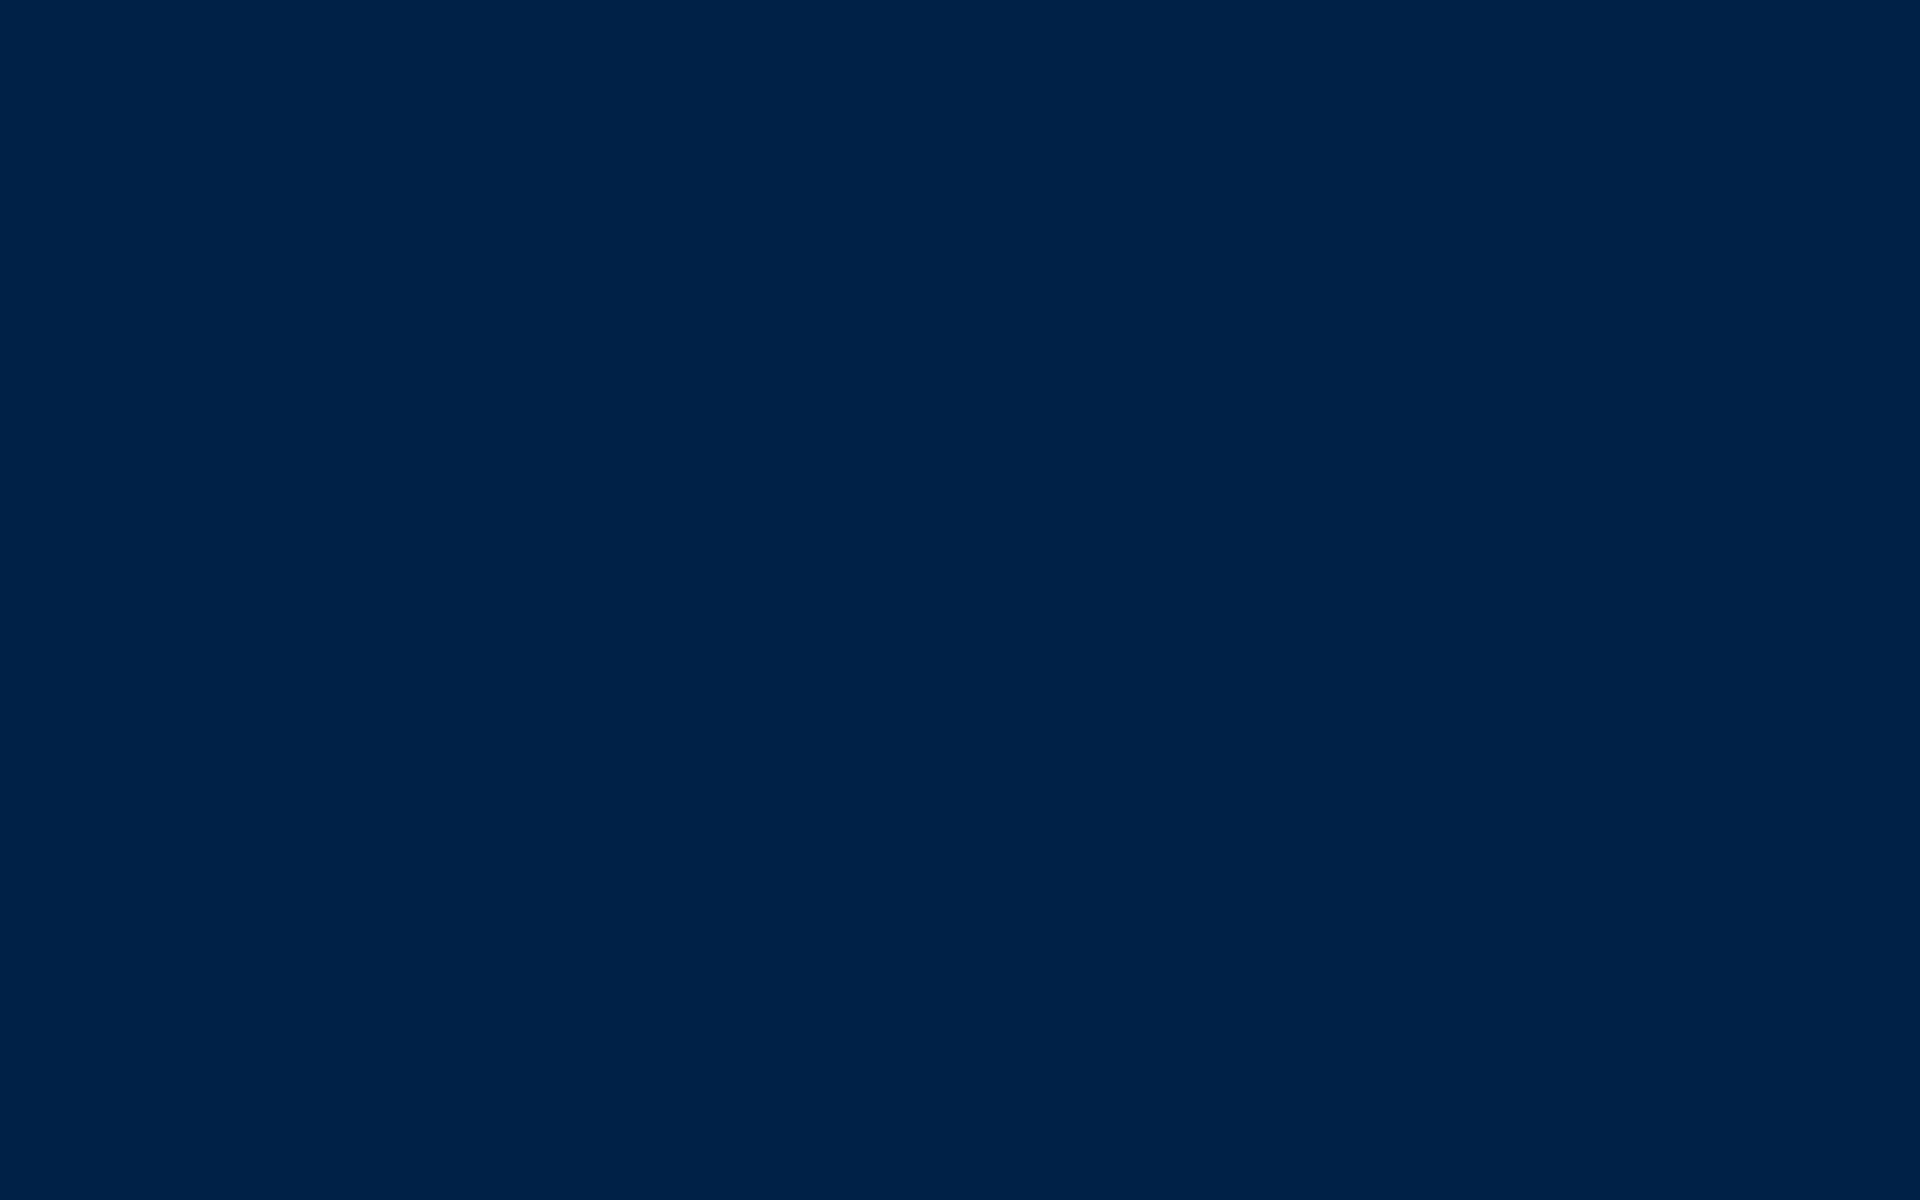 1920x1200 Oxford Blue Solid Color Background